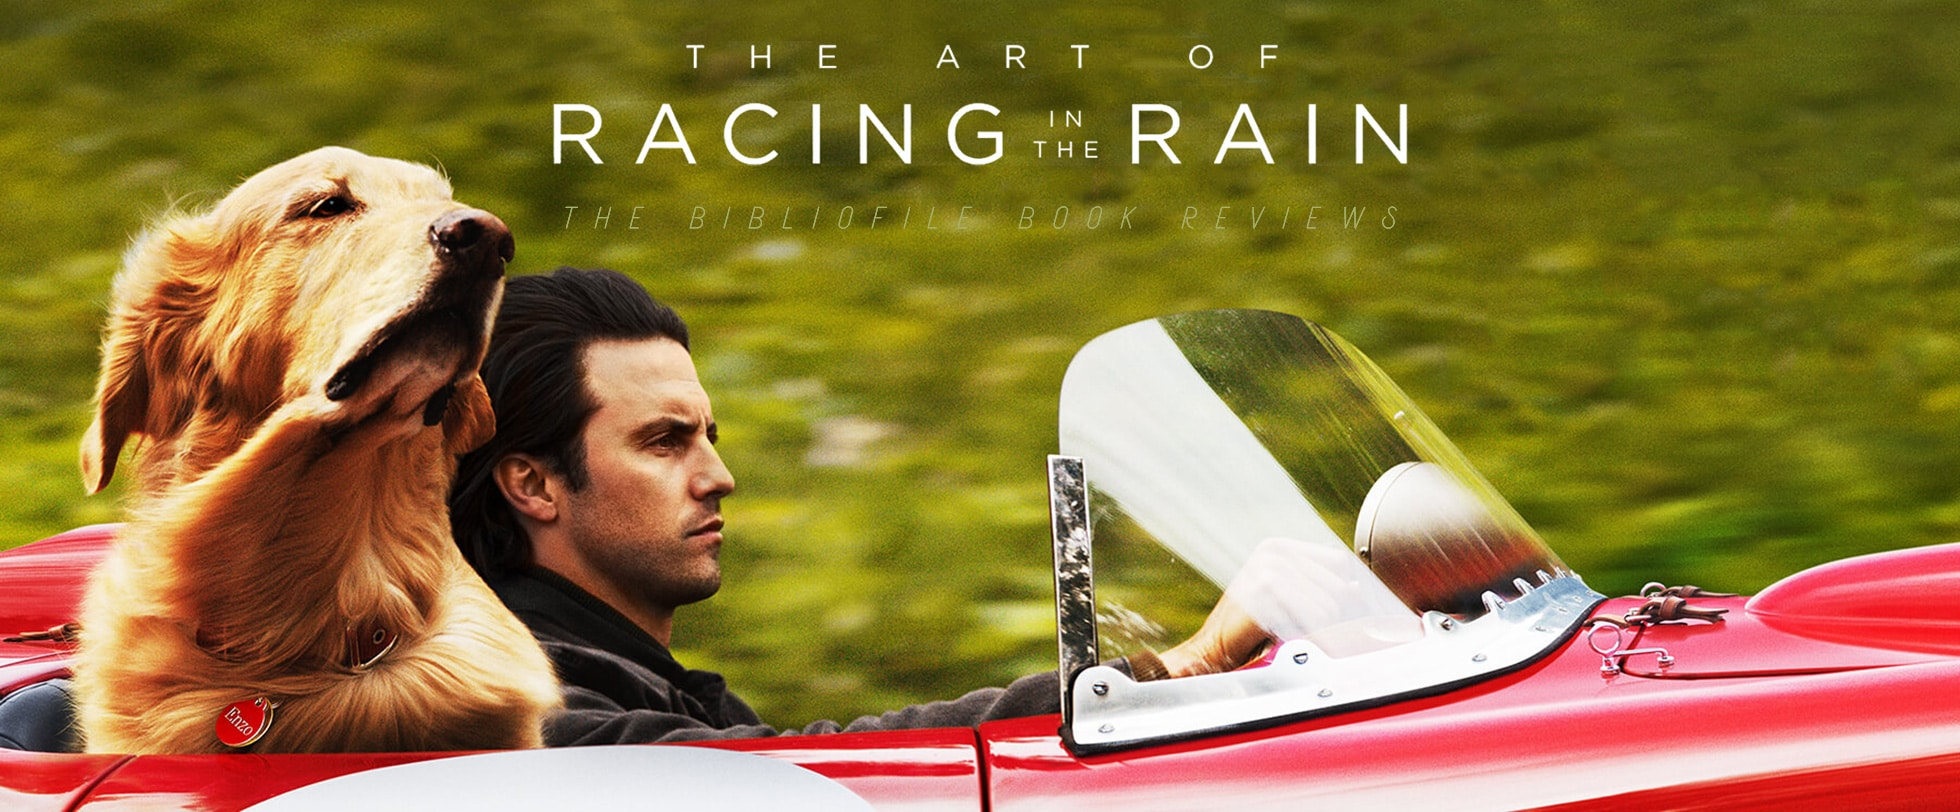 the art of racing in the rain garth stein summary review